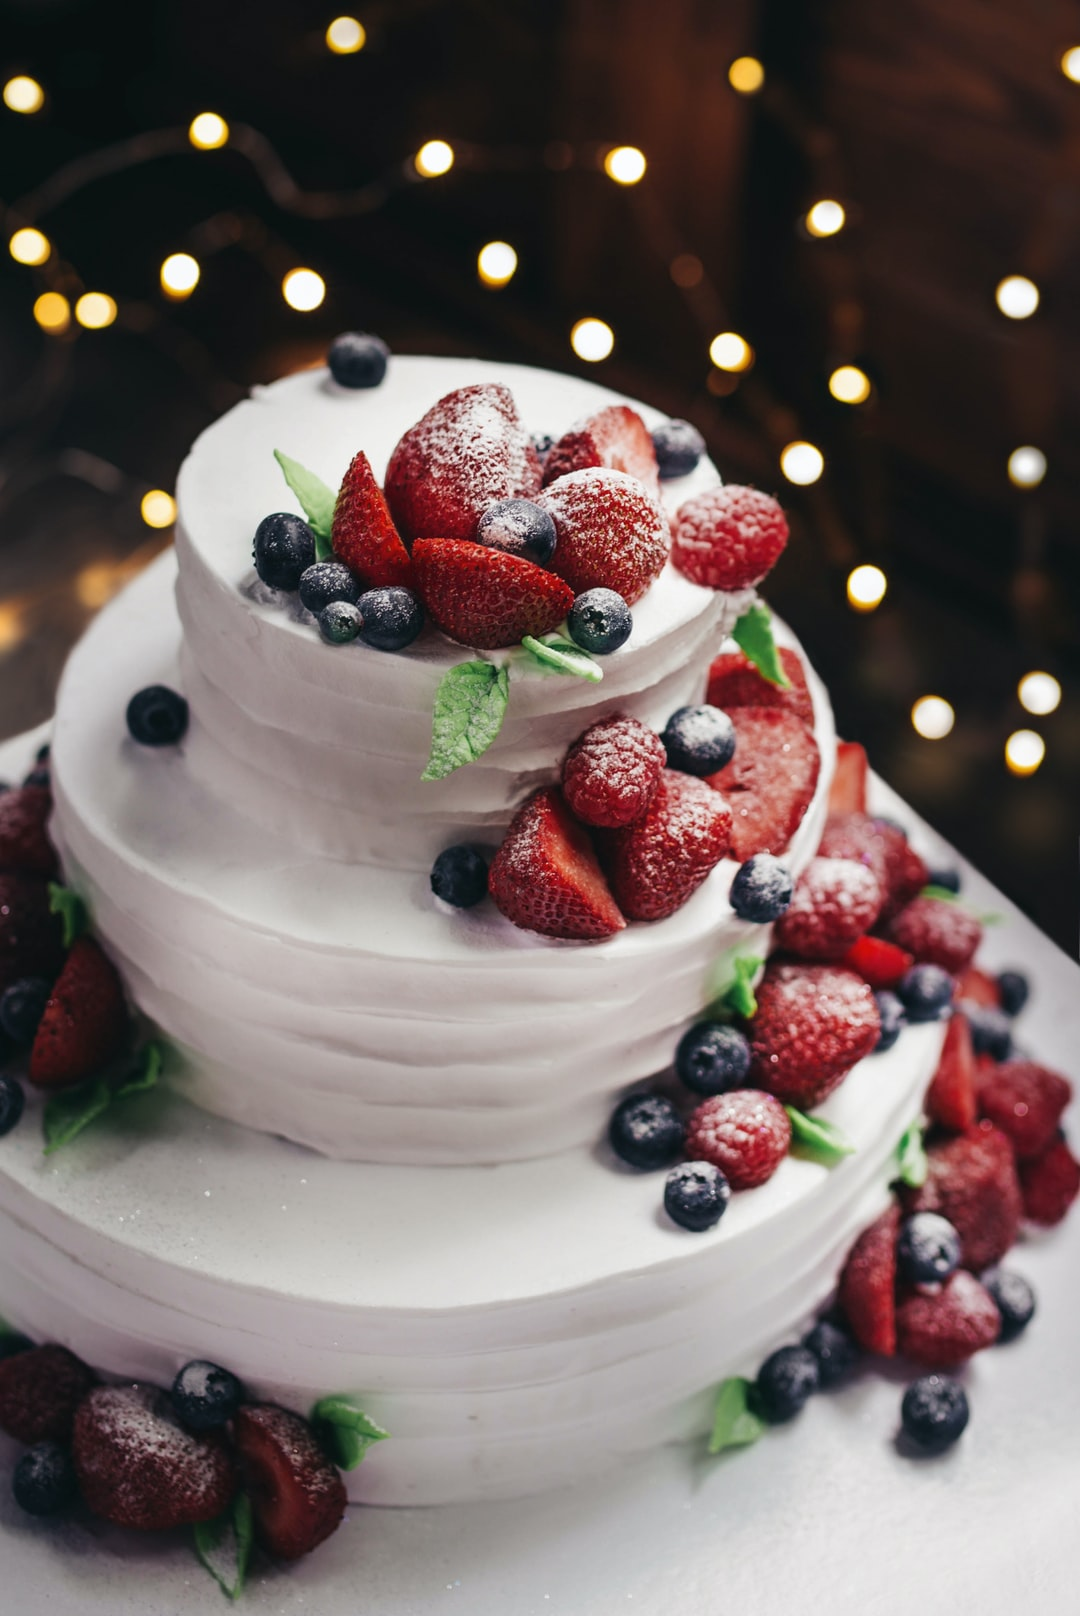 100 Birthday Cake Pictures Download Free Images Stock Photos On